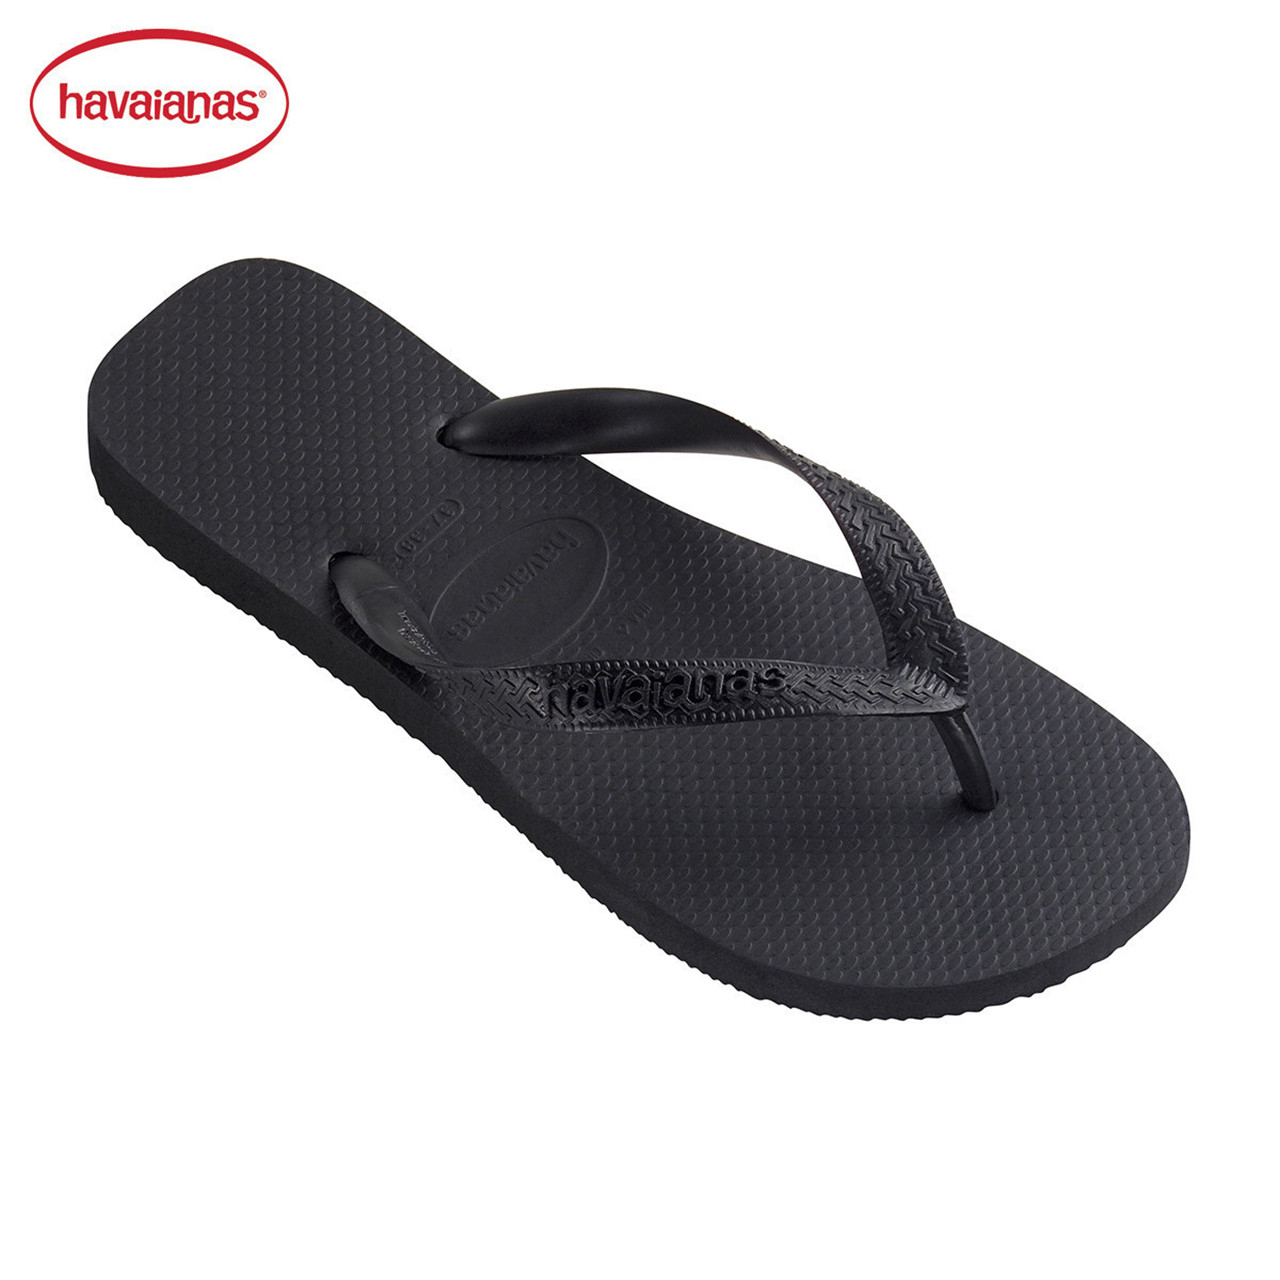 43b461ad28fc11 Havaianas Women Home Slippers Casual Shoes Girl Bed Room Shoes Indoor  Slippers DN0004 - Phzar